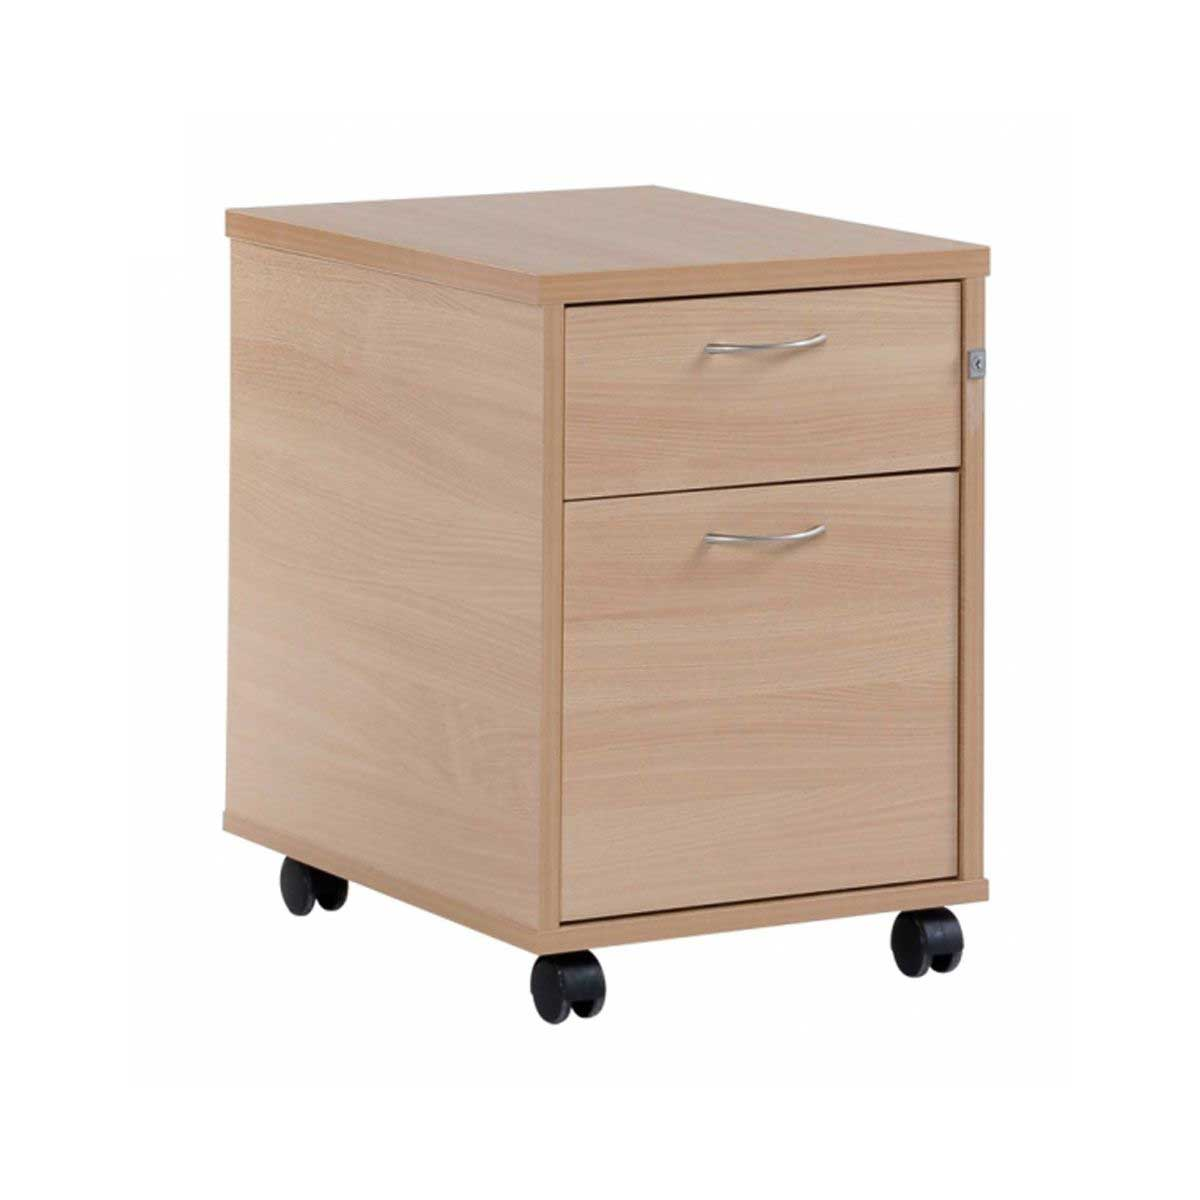 Image of 2 Drawer Mobile Pedestal, Woodland Beech